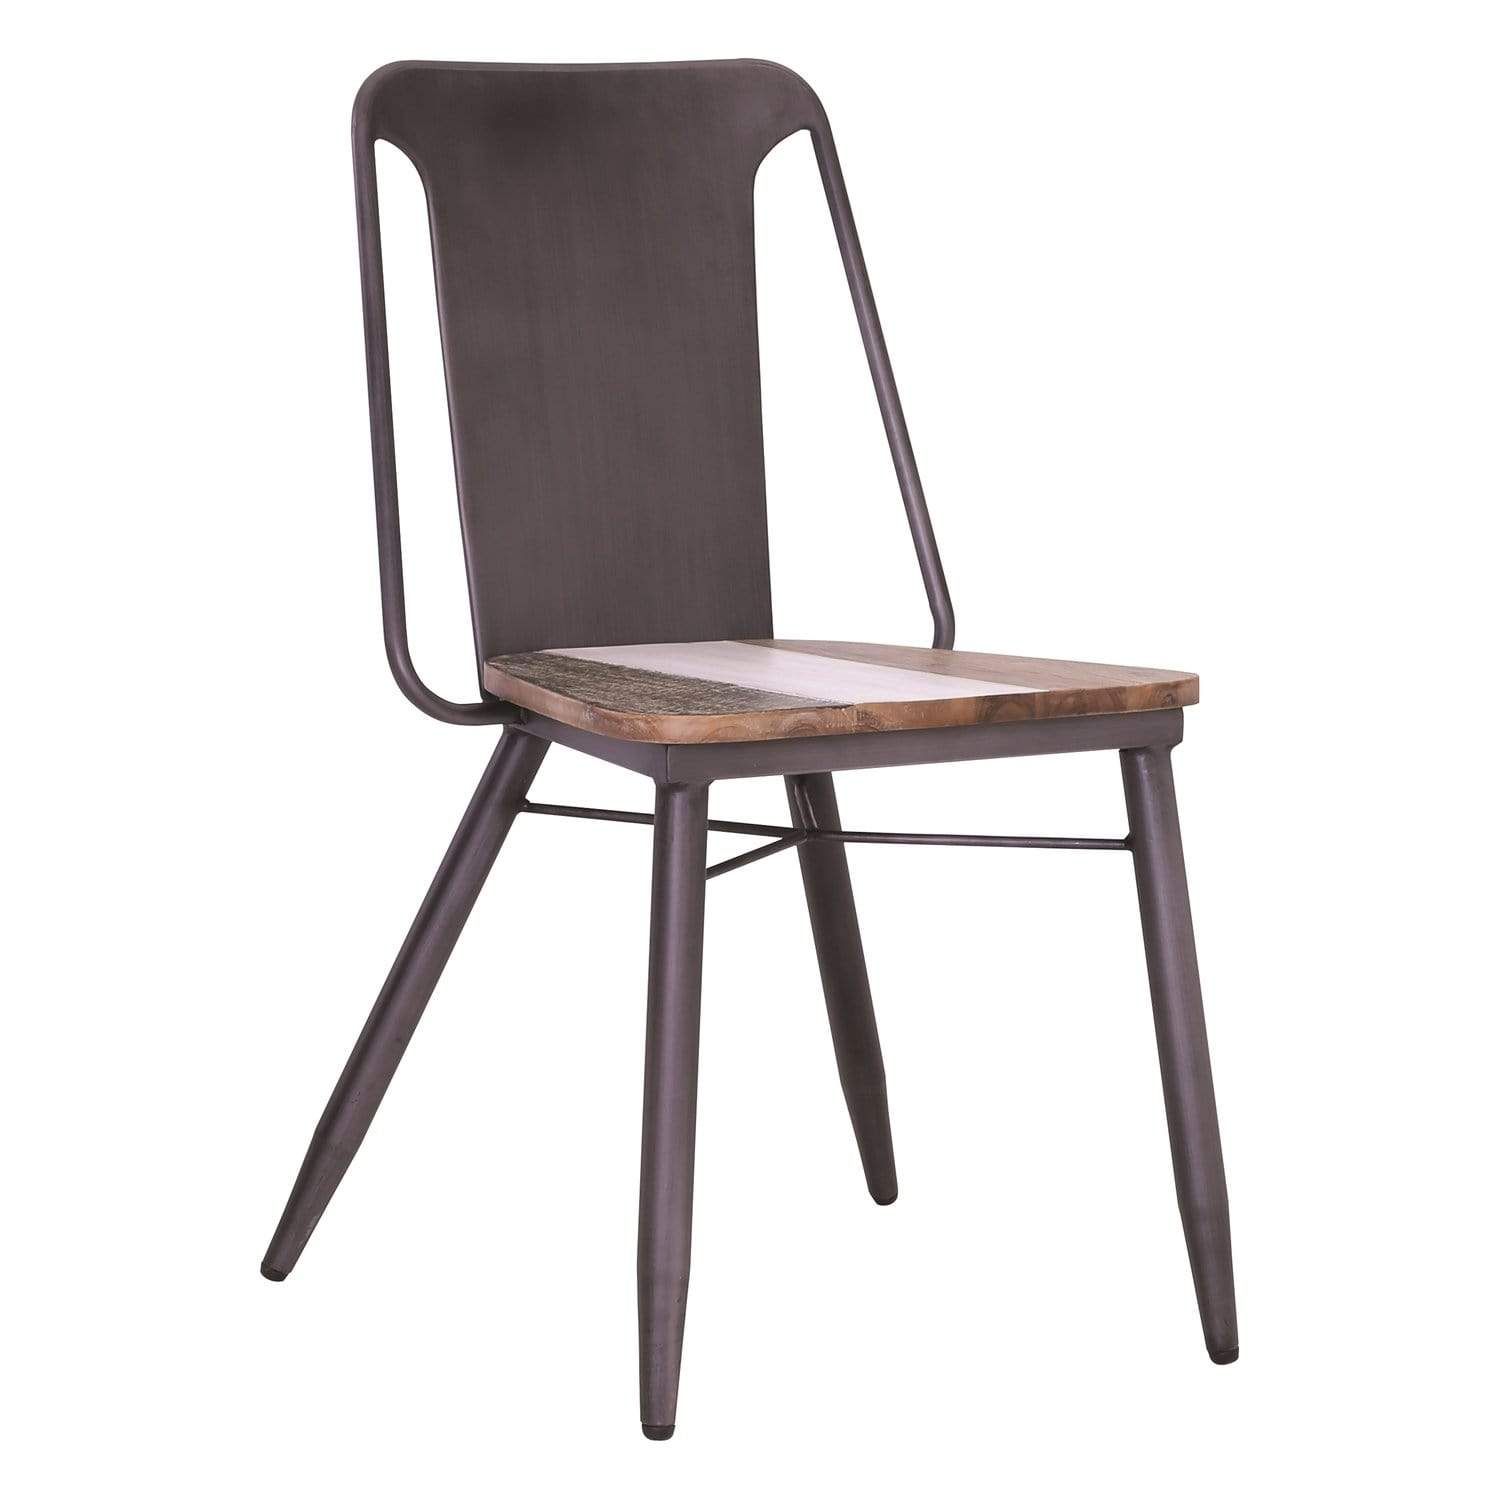 mfdesign88 Dachi Dining Chair In Grey Anthracite Frame